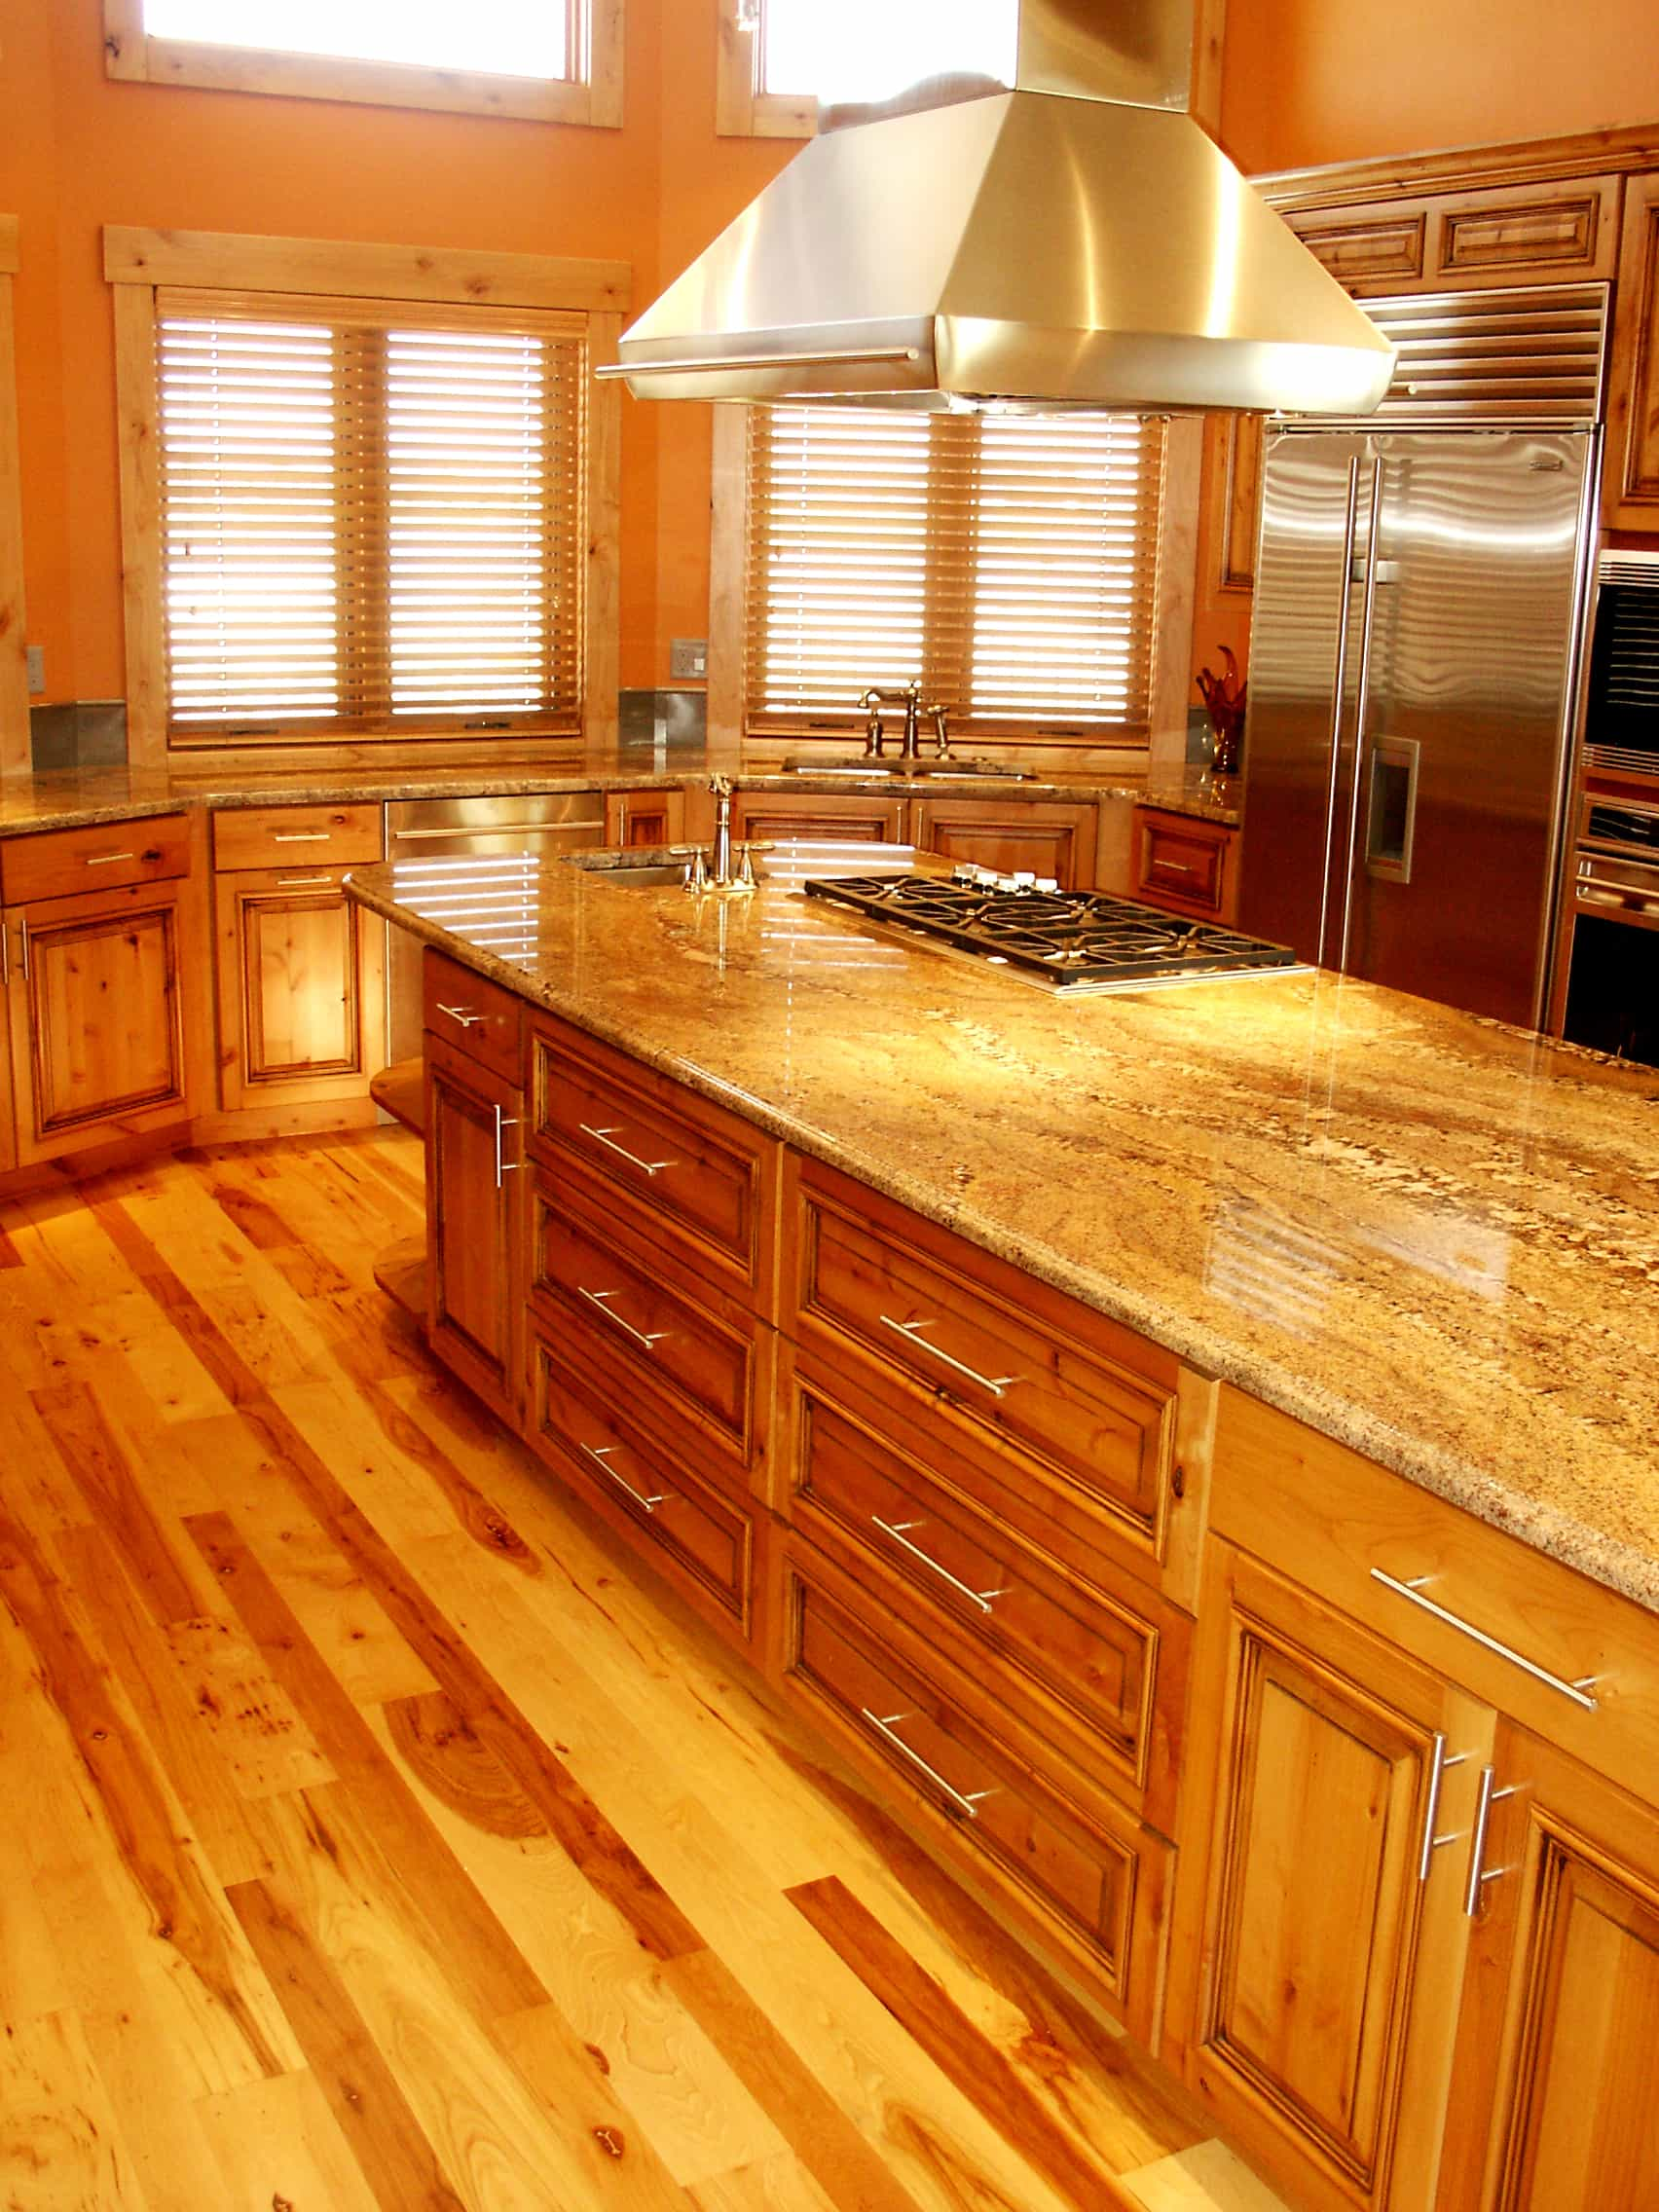 Kitchen Island with Wood Floors